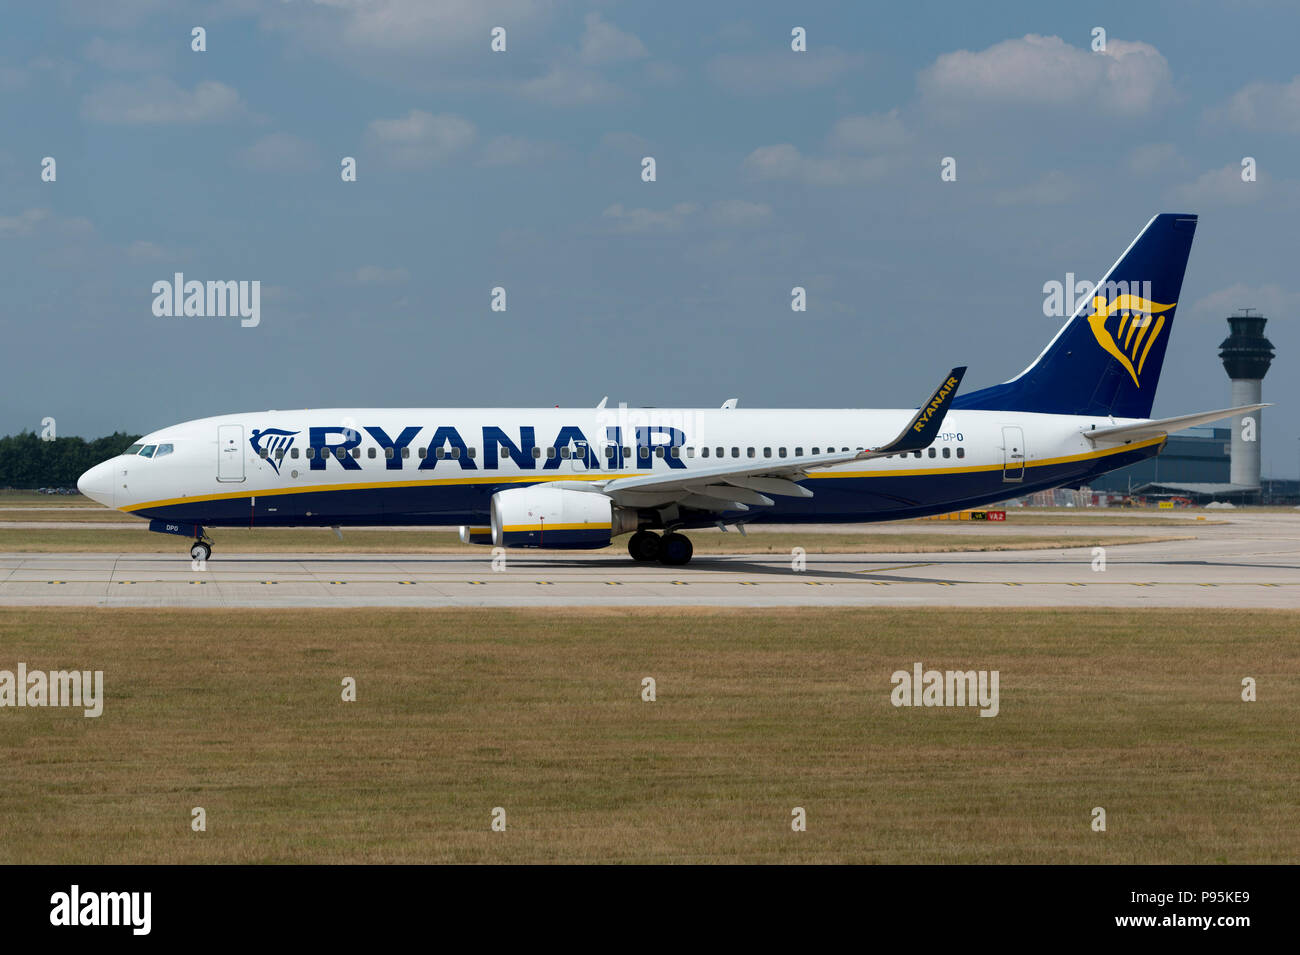 A Ryanair Boeing 737-8AS sits on the runway at Manchester Airport as it prepares to take-off. - Stock Image